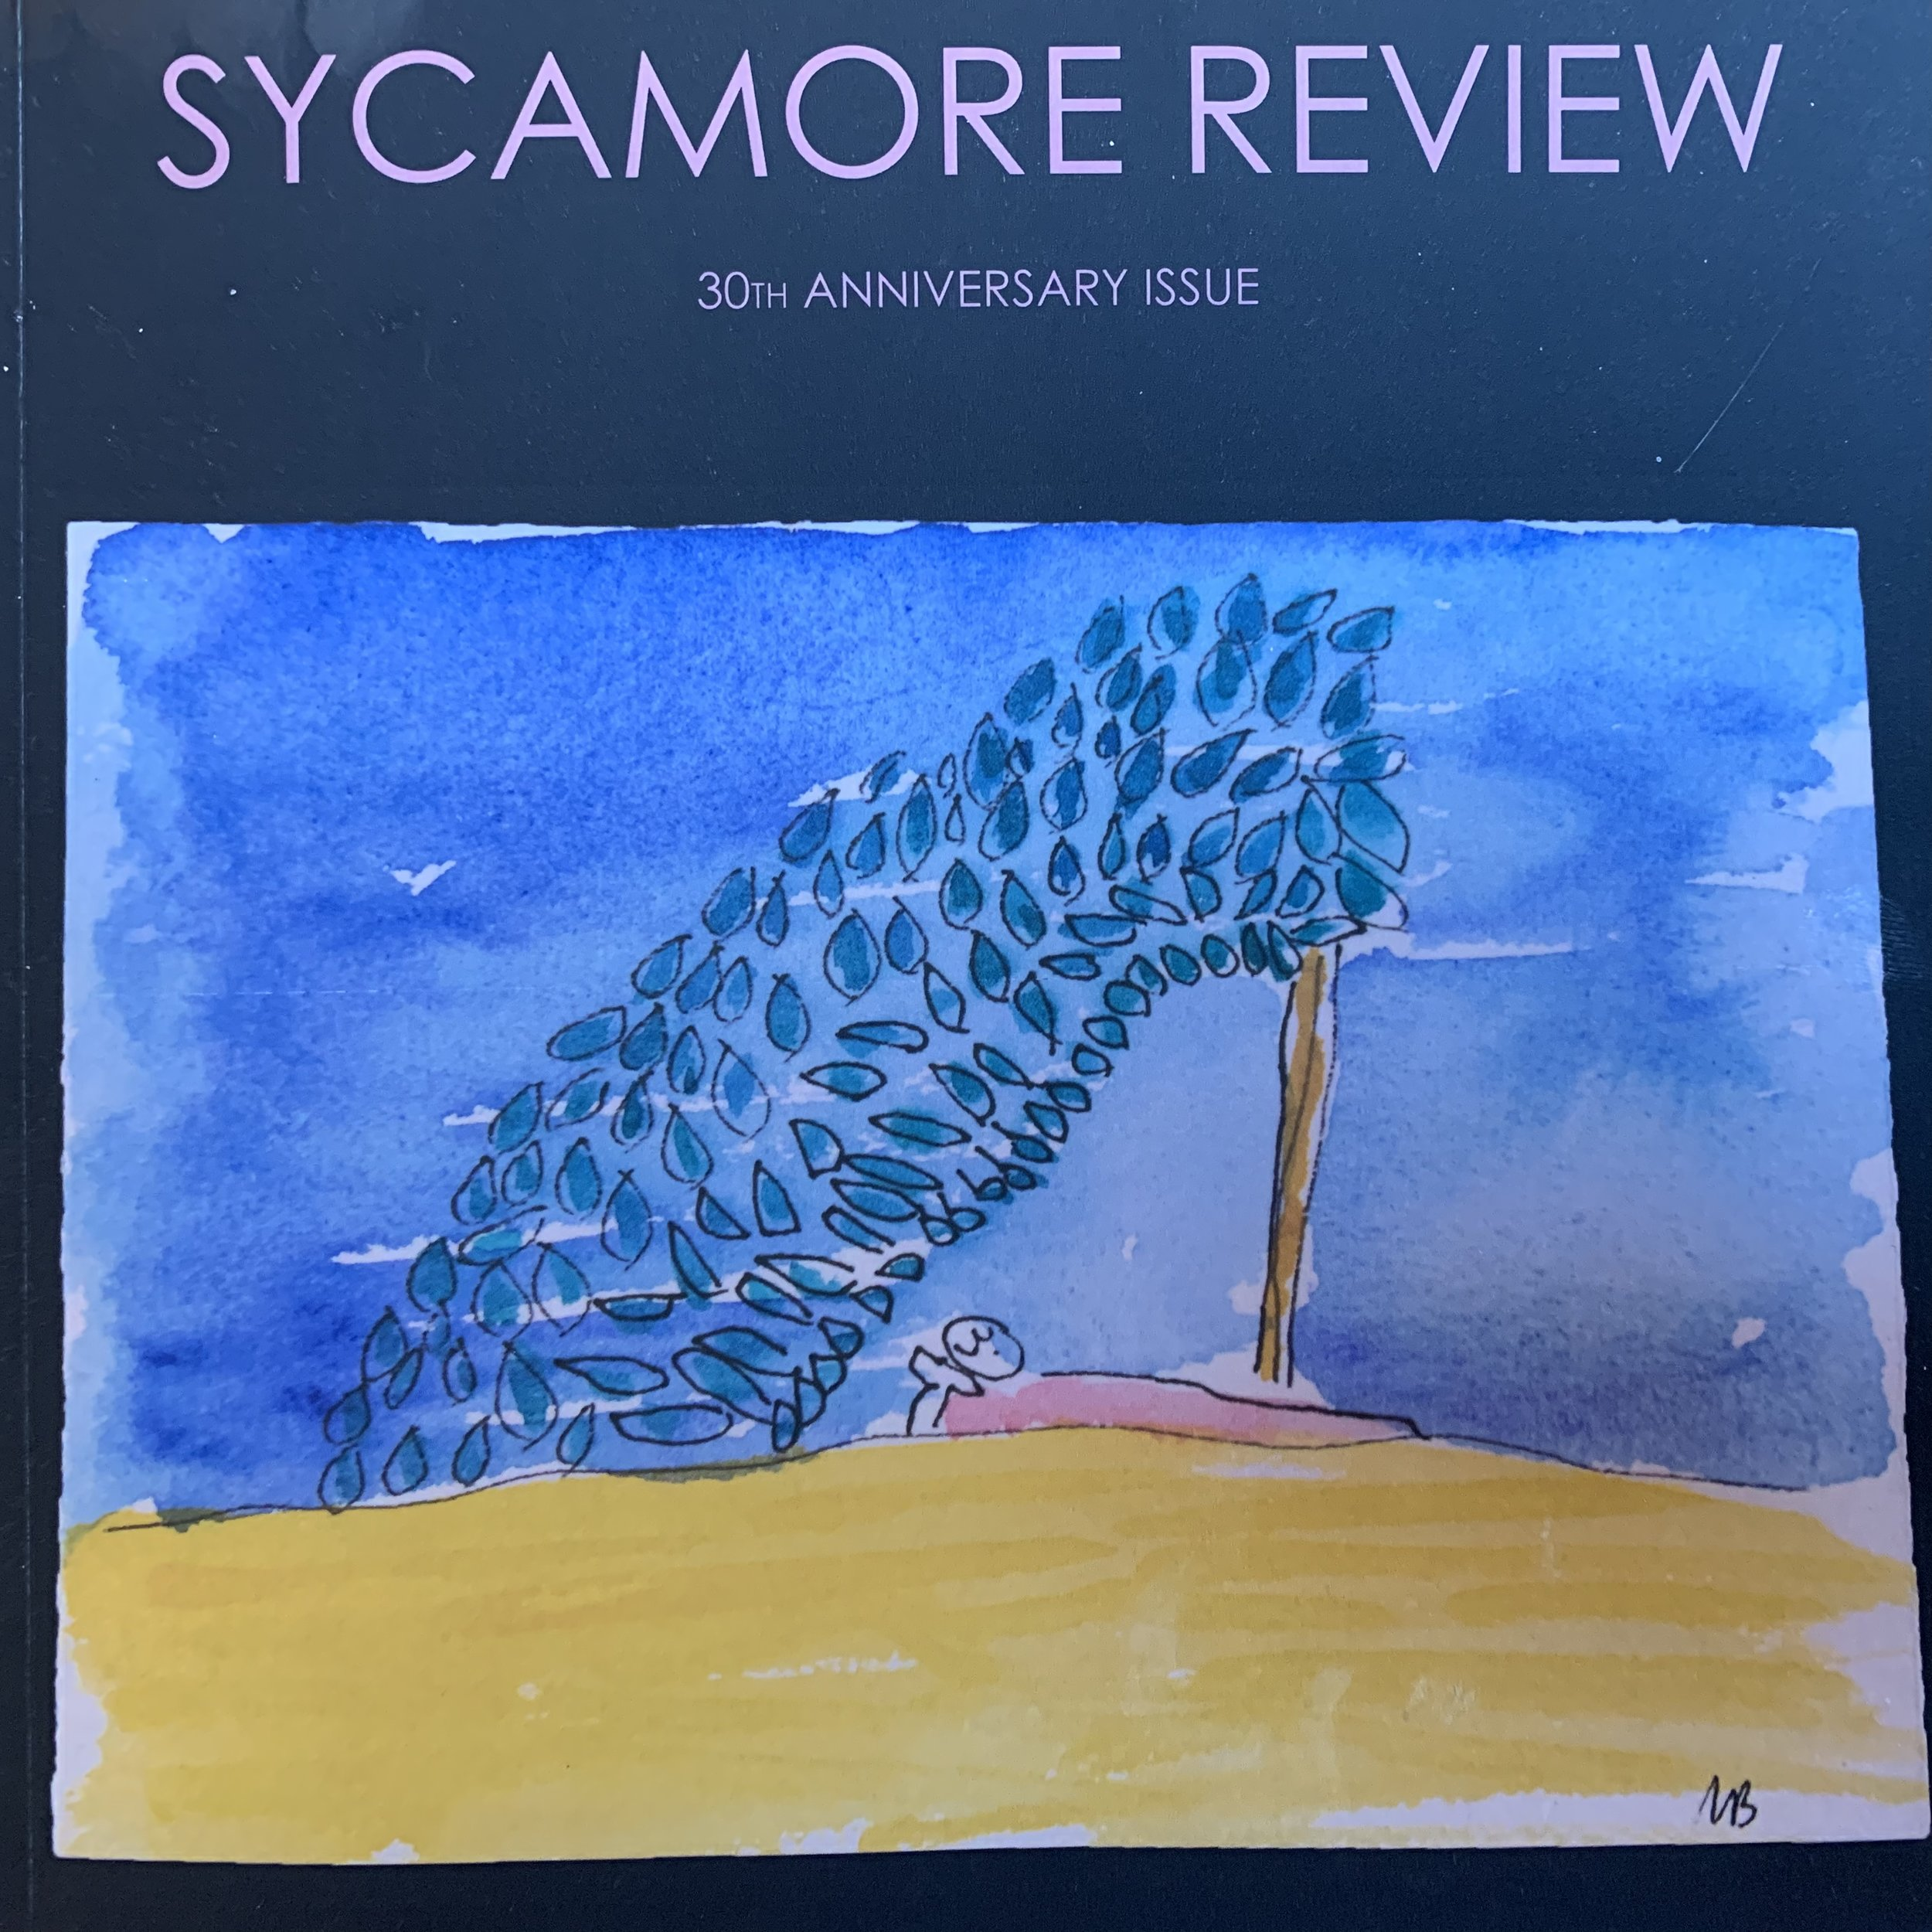 Cover of the 30th Anniversary Issue of  Sycamore Review . Artwork by Marianne Boruch.